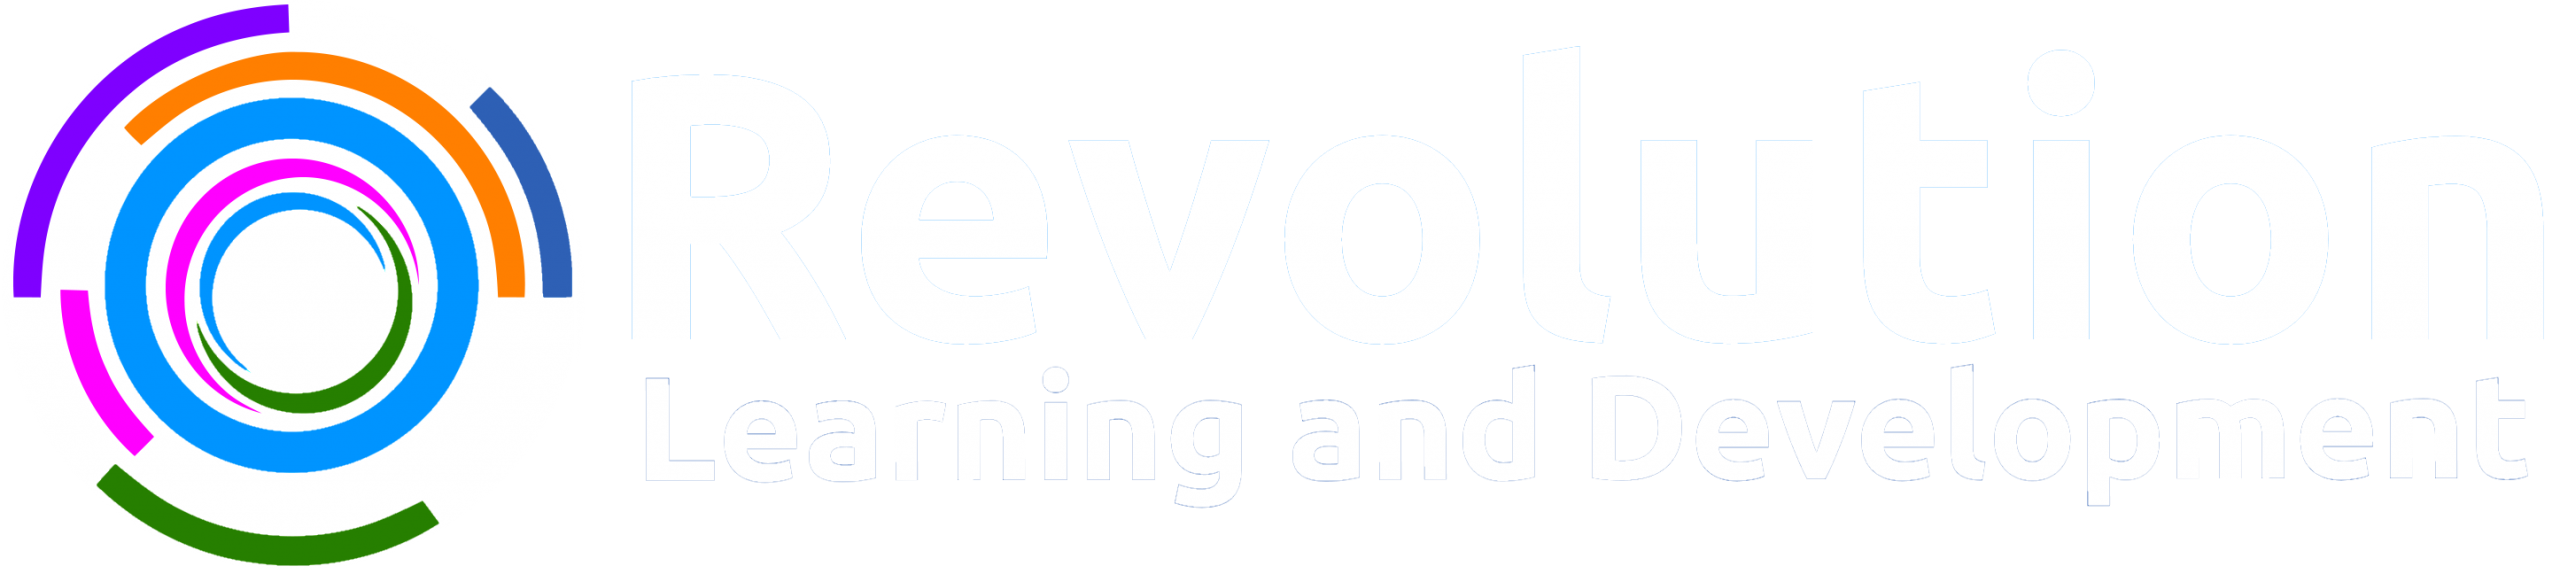 Revolution Learning and Development Ltd – Estonia